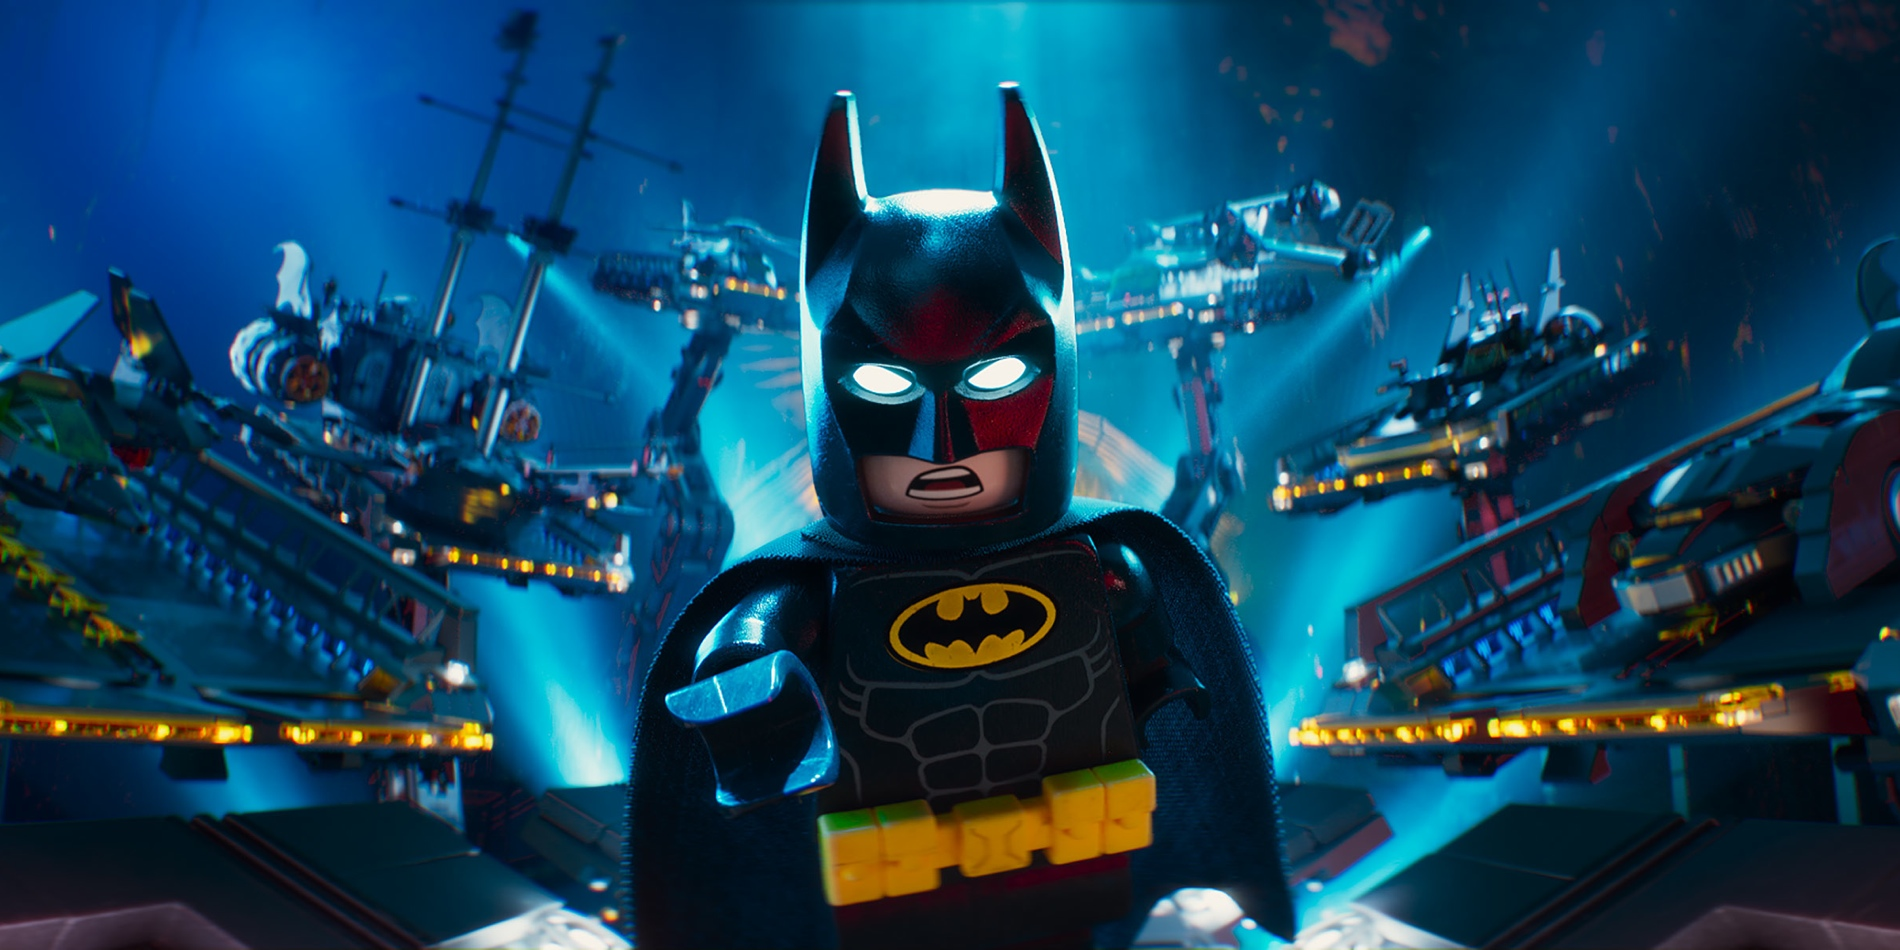 LEGO Batman Movie Director Teases Characters & Easter Eggs